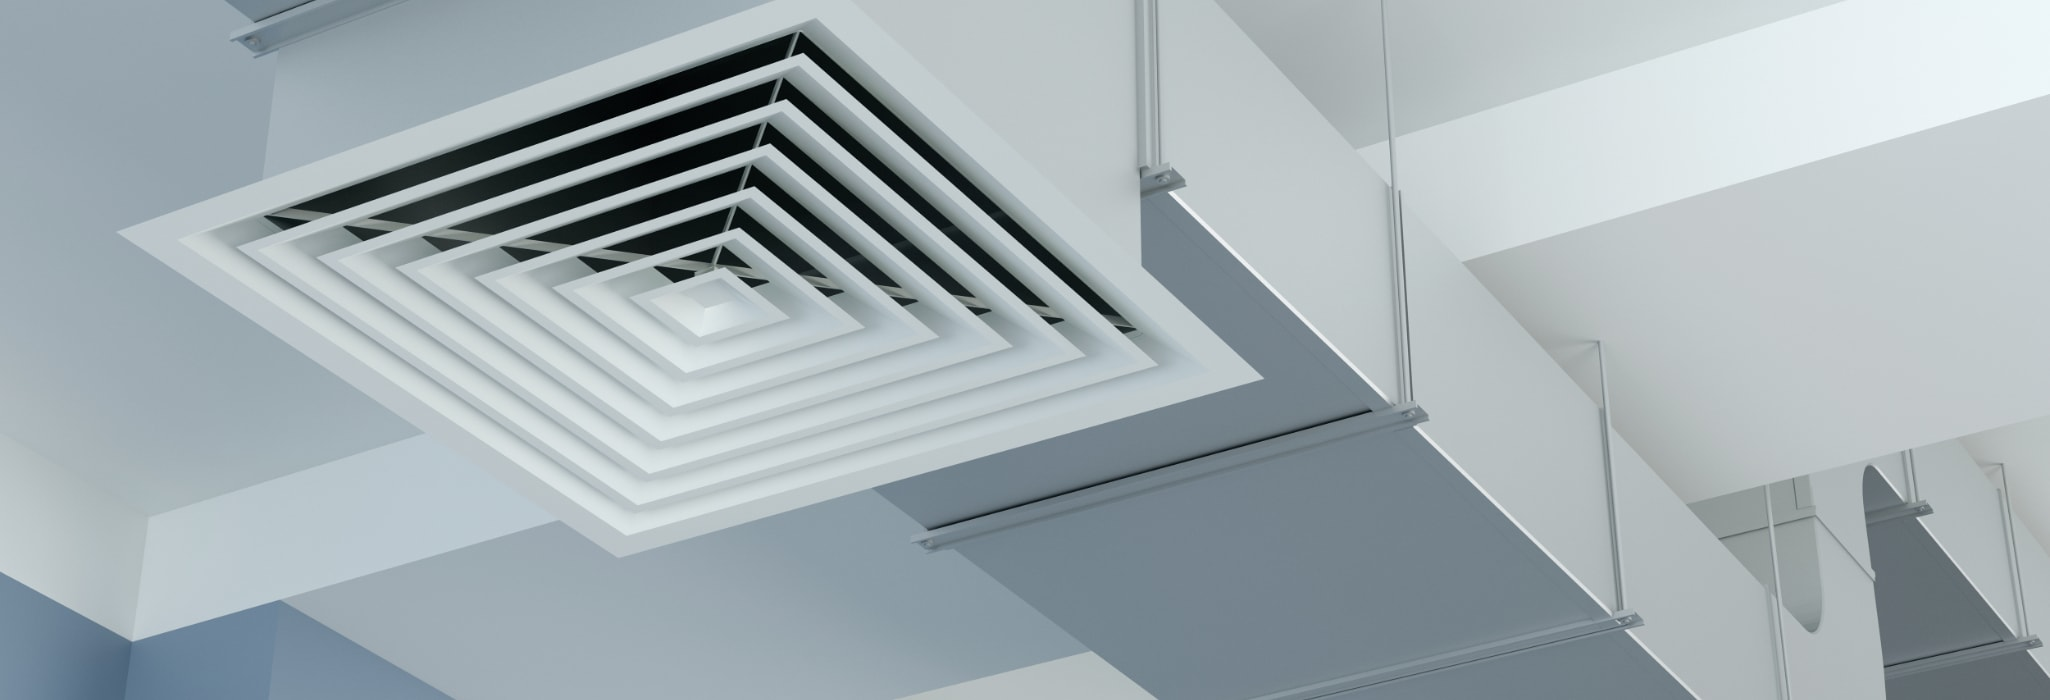 Air Duct Replacement Morgan Hill